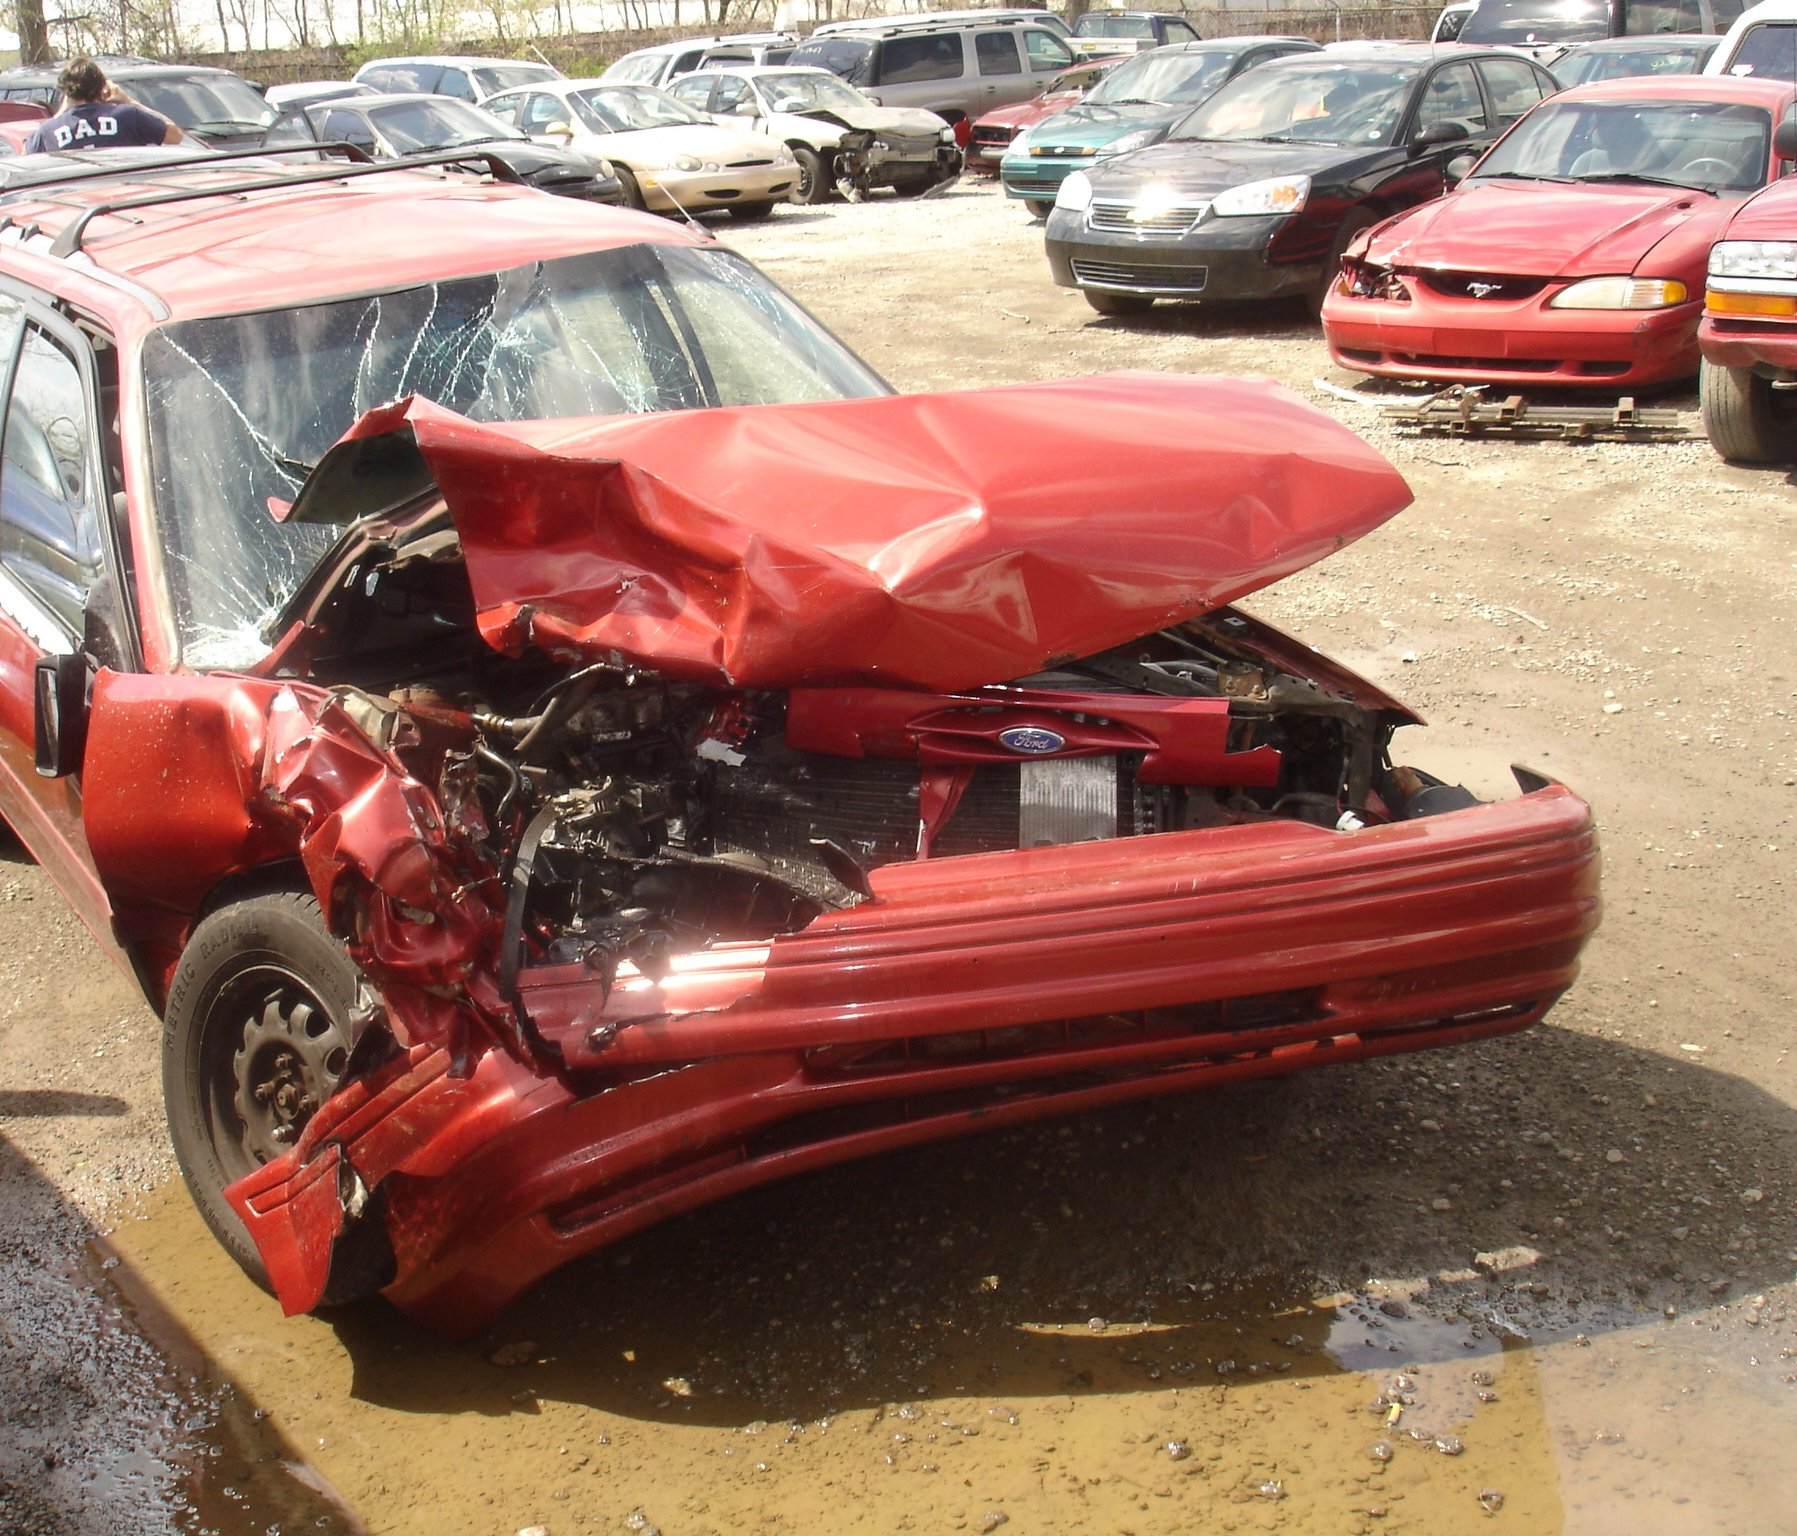 Accident Damaged Cars For Sale Philippines